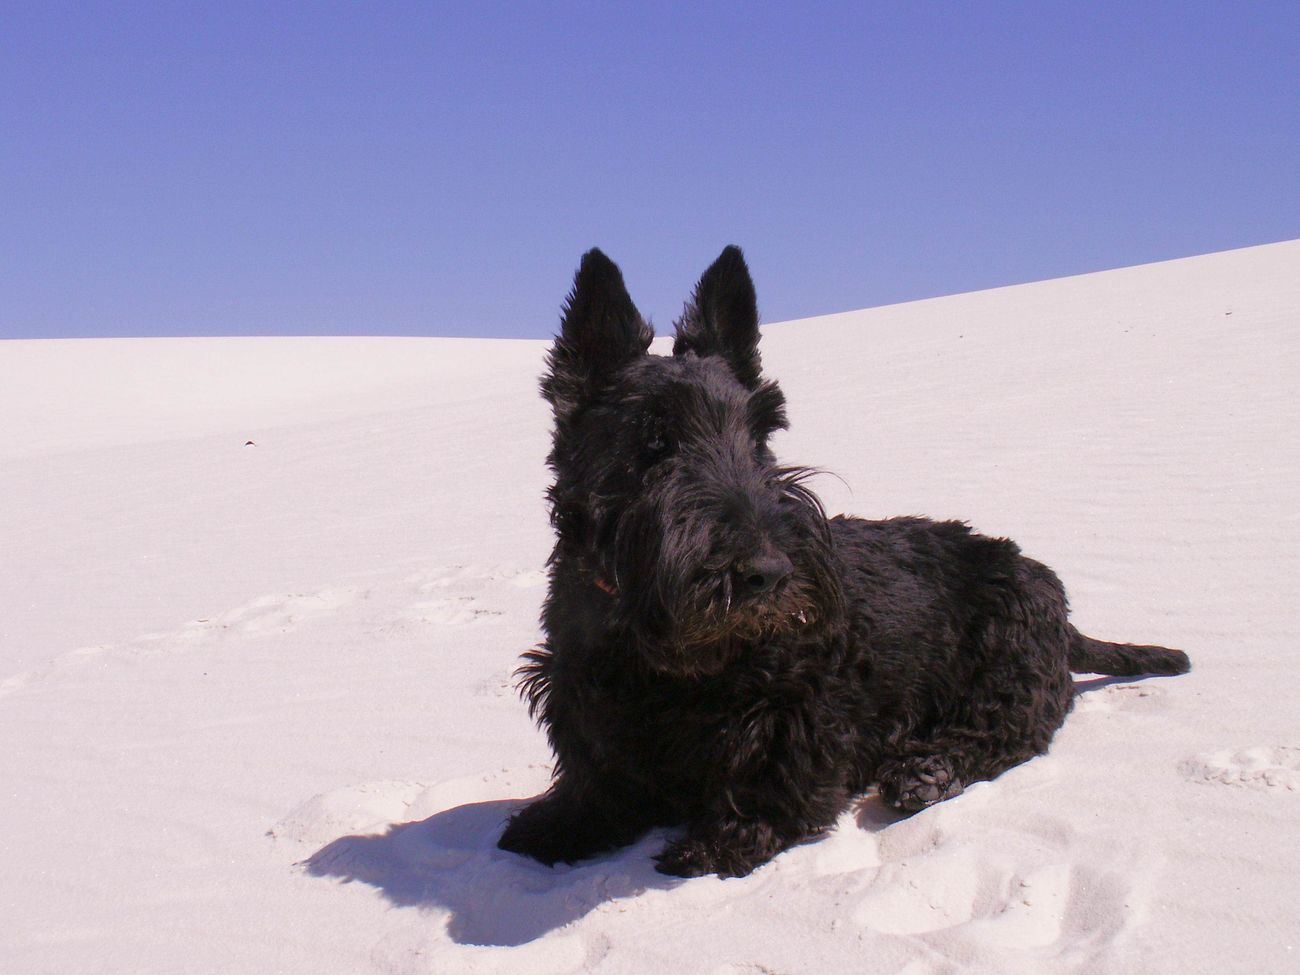 Animal Themes Clear Sky Cold Temperature Day Dog Domestic Animals Field Mammal Nature No People One Animal Outdoors Pets Scottish Terrier Sky Snow Winter